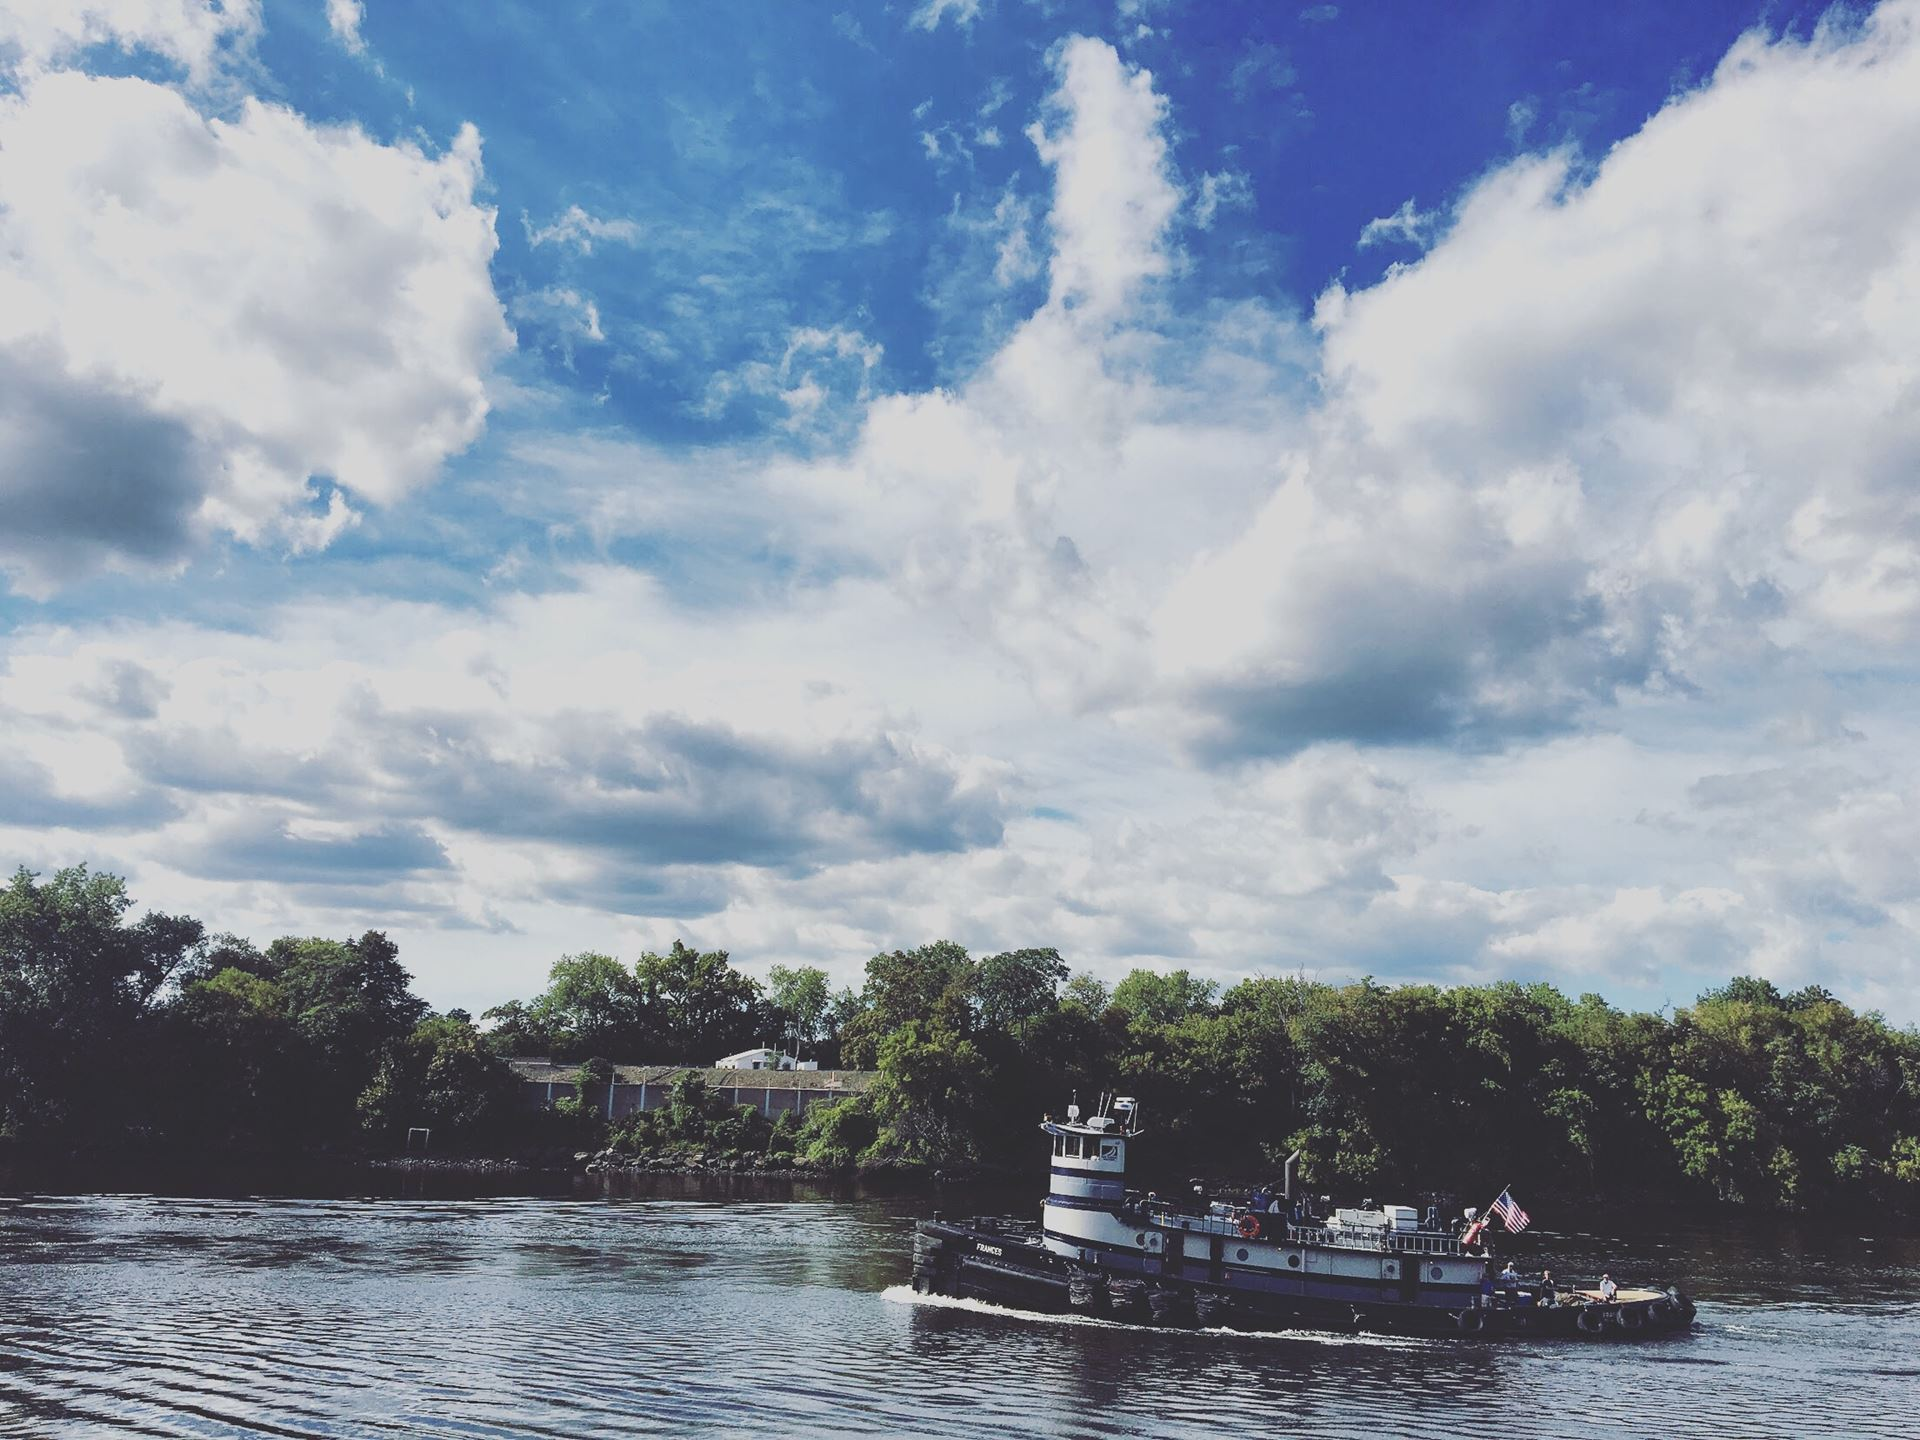 A tugboat going along the Erie Canal